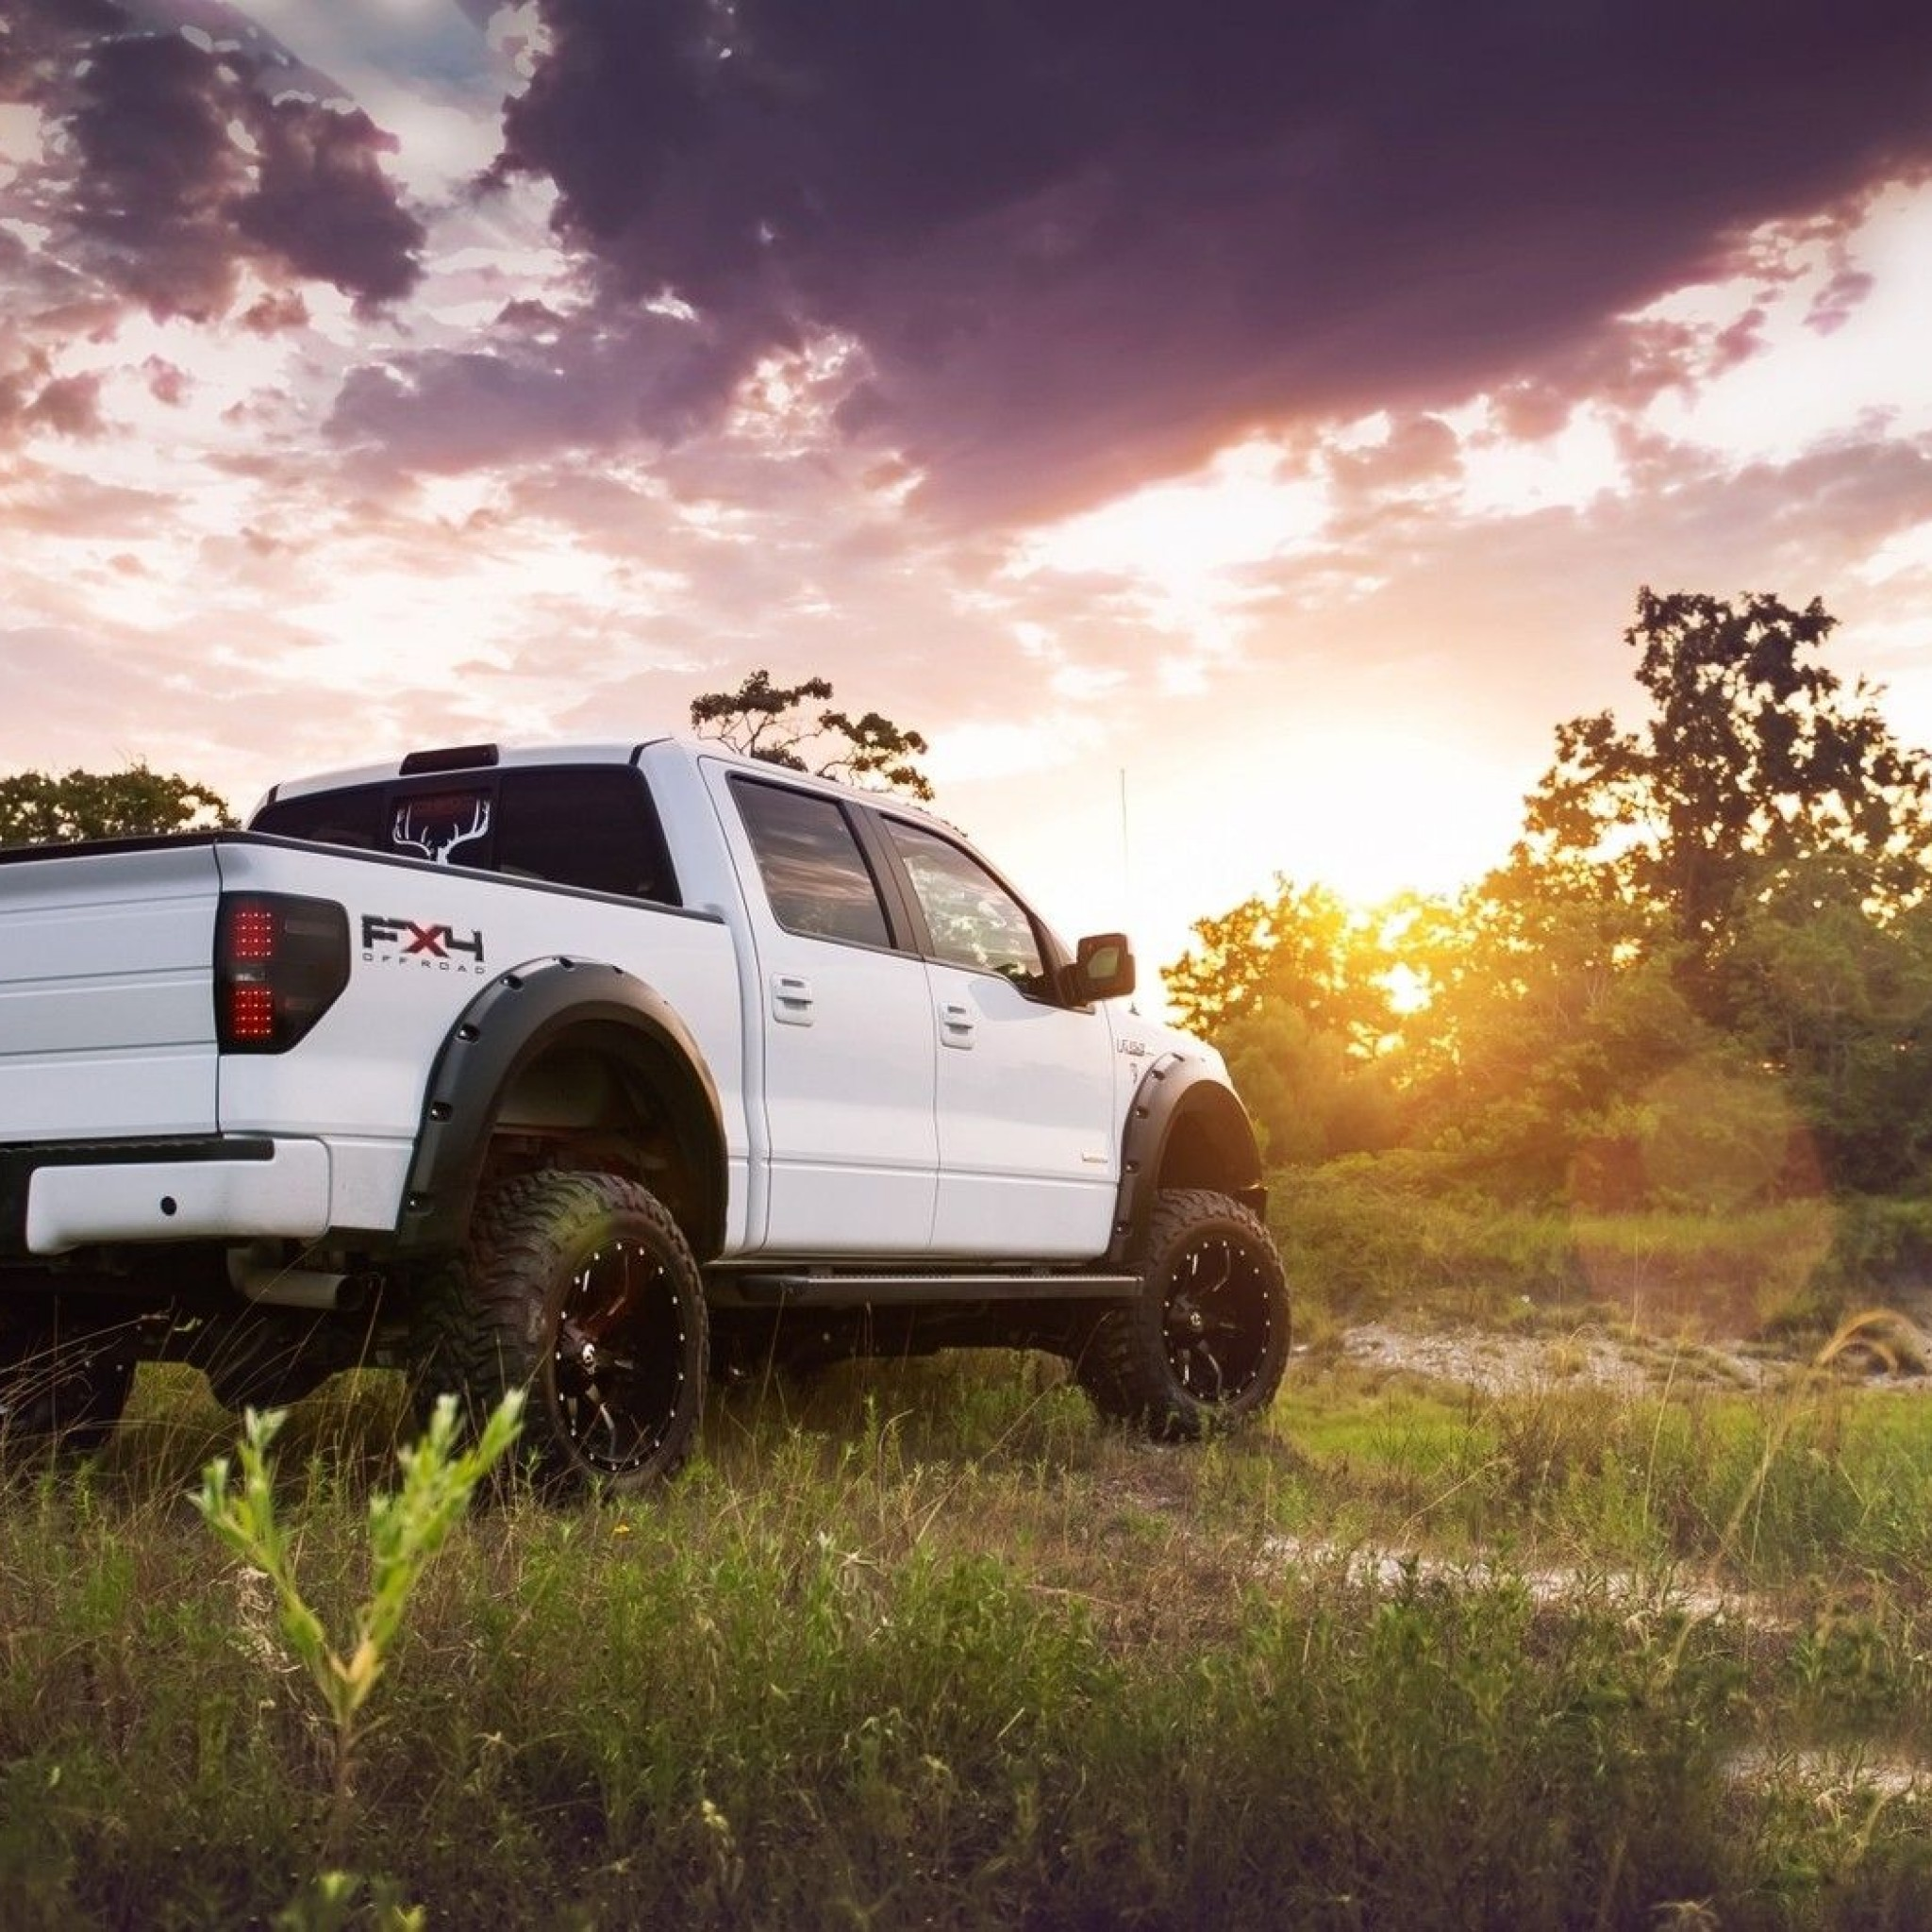 ford truck iphone wallpaper desktop | Hd Wallpaper Full